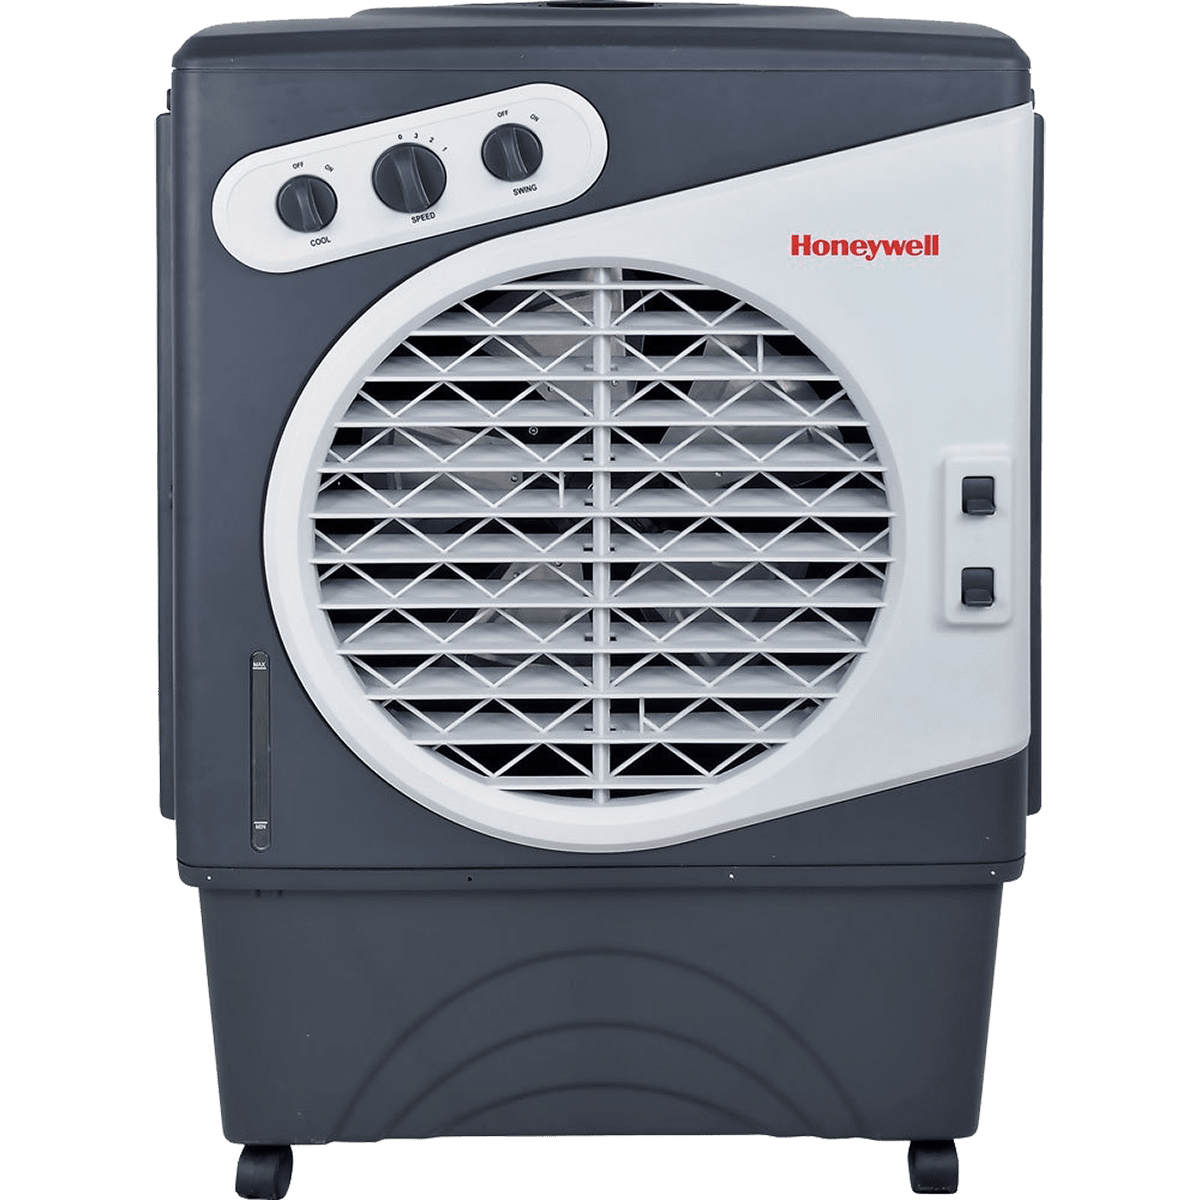 Honeywell Co60pm Evaporative Cooler Sylvane